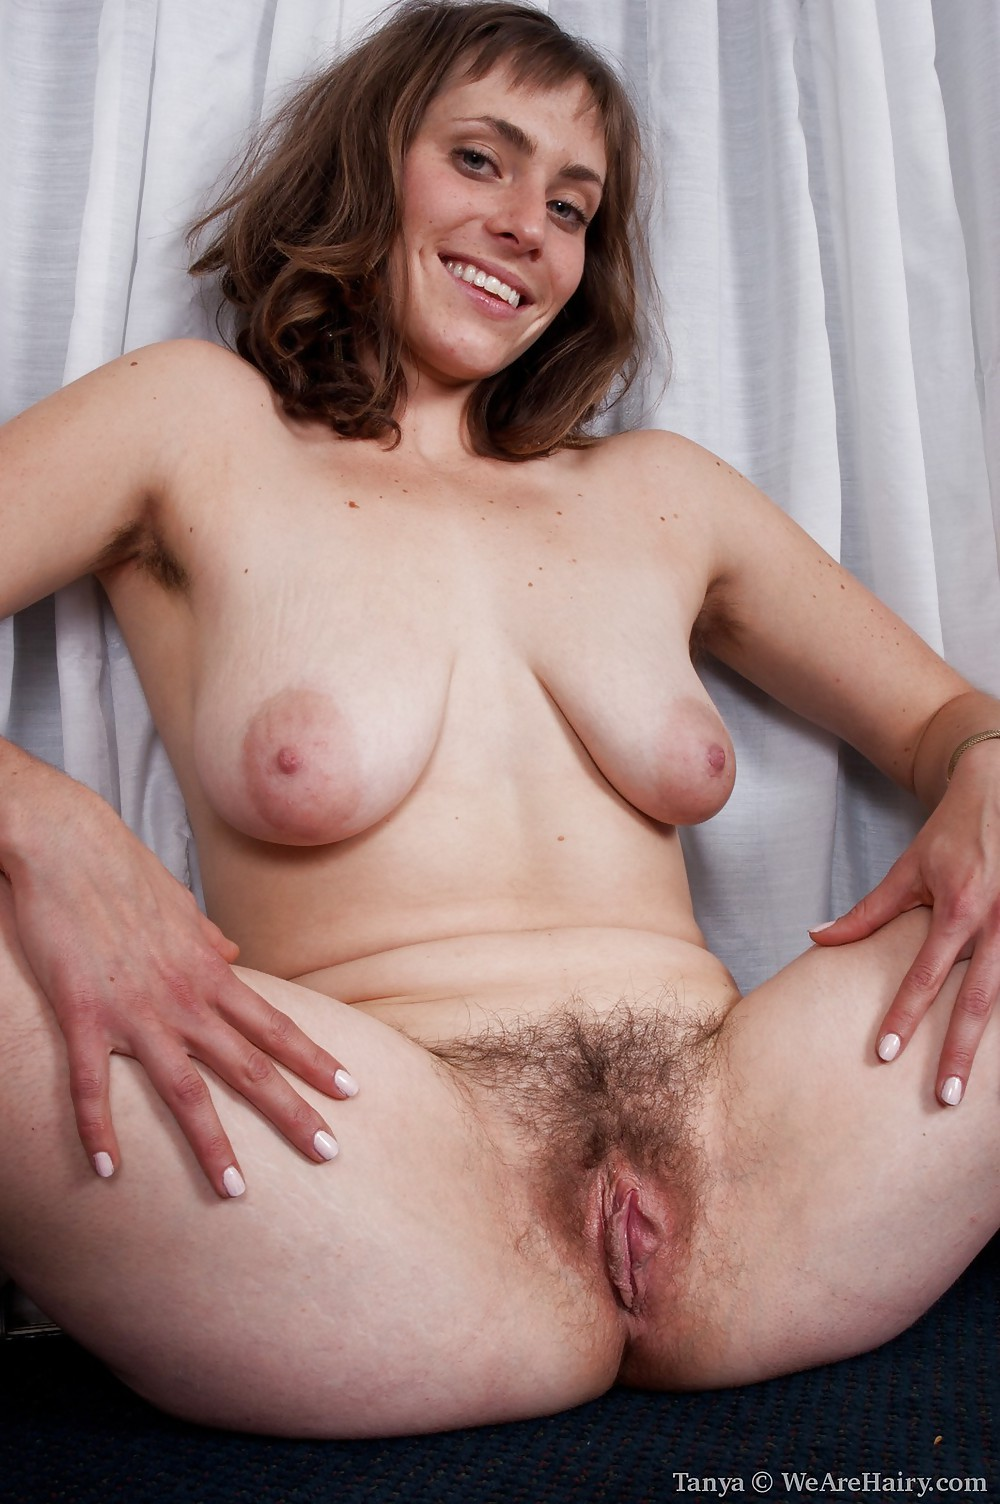 Milf Spreading Hairy Pussy Porn Pics #22830603